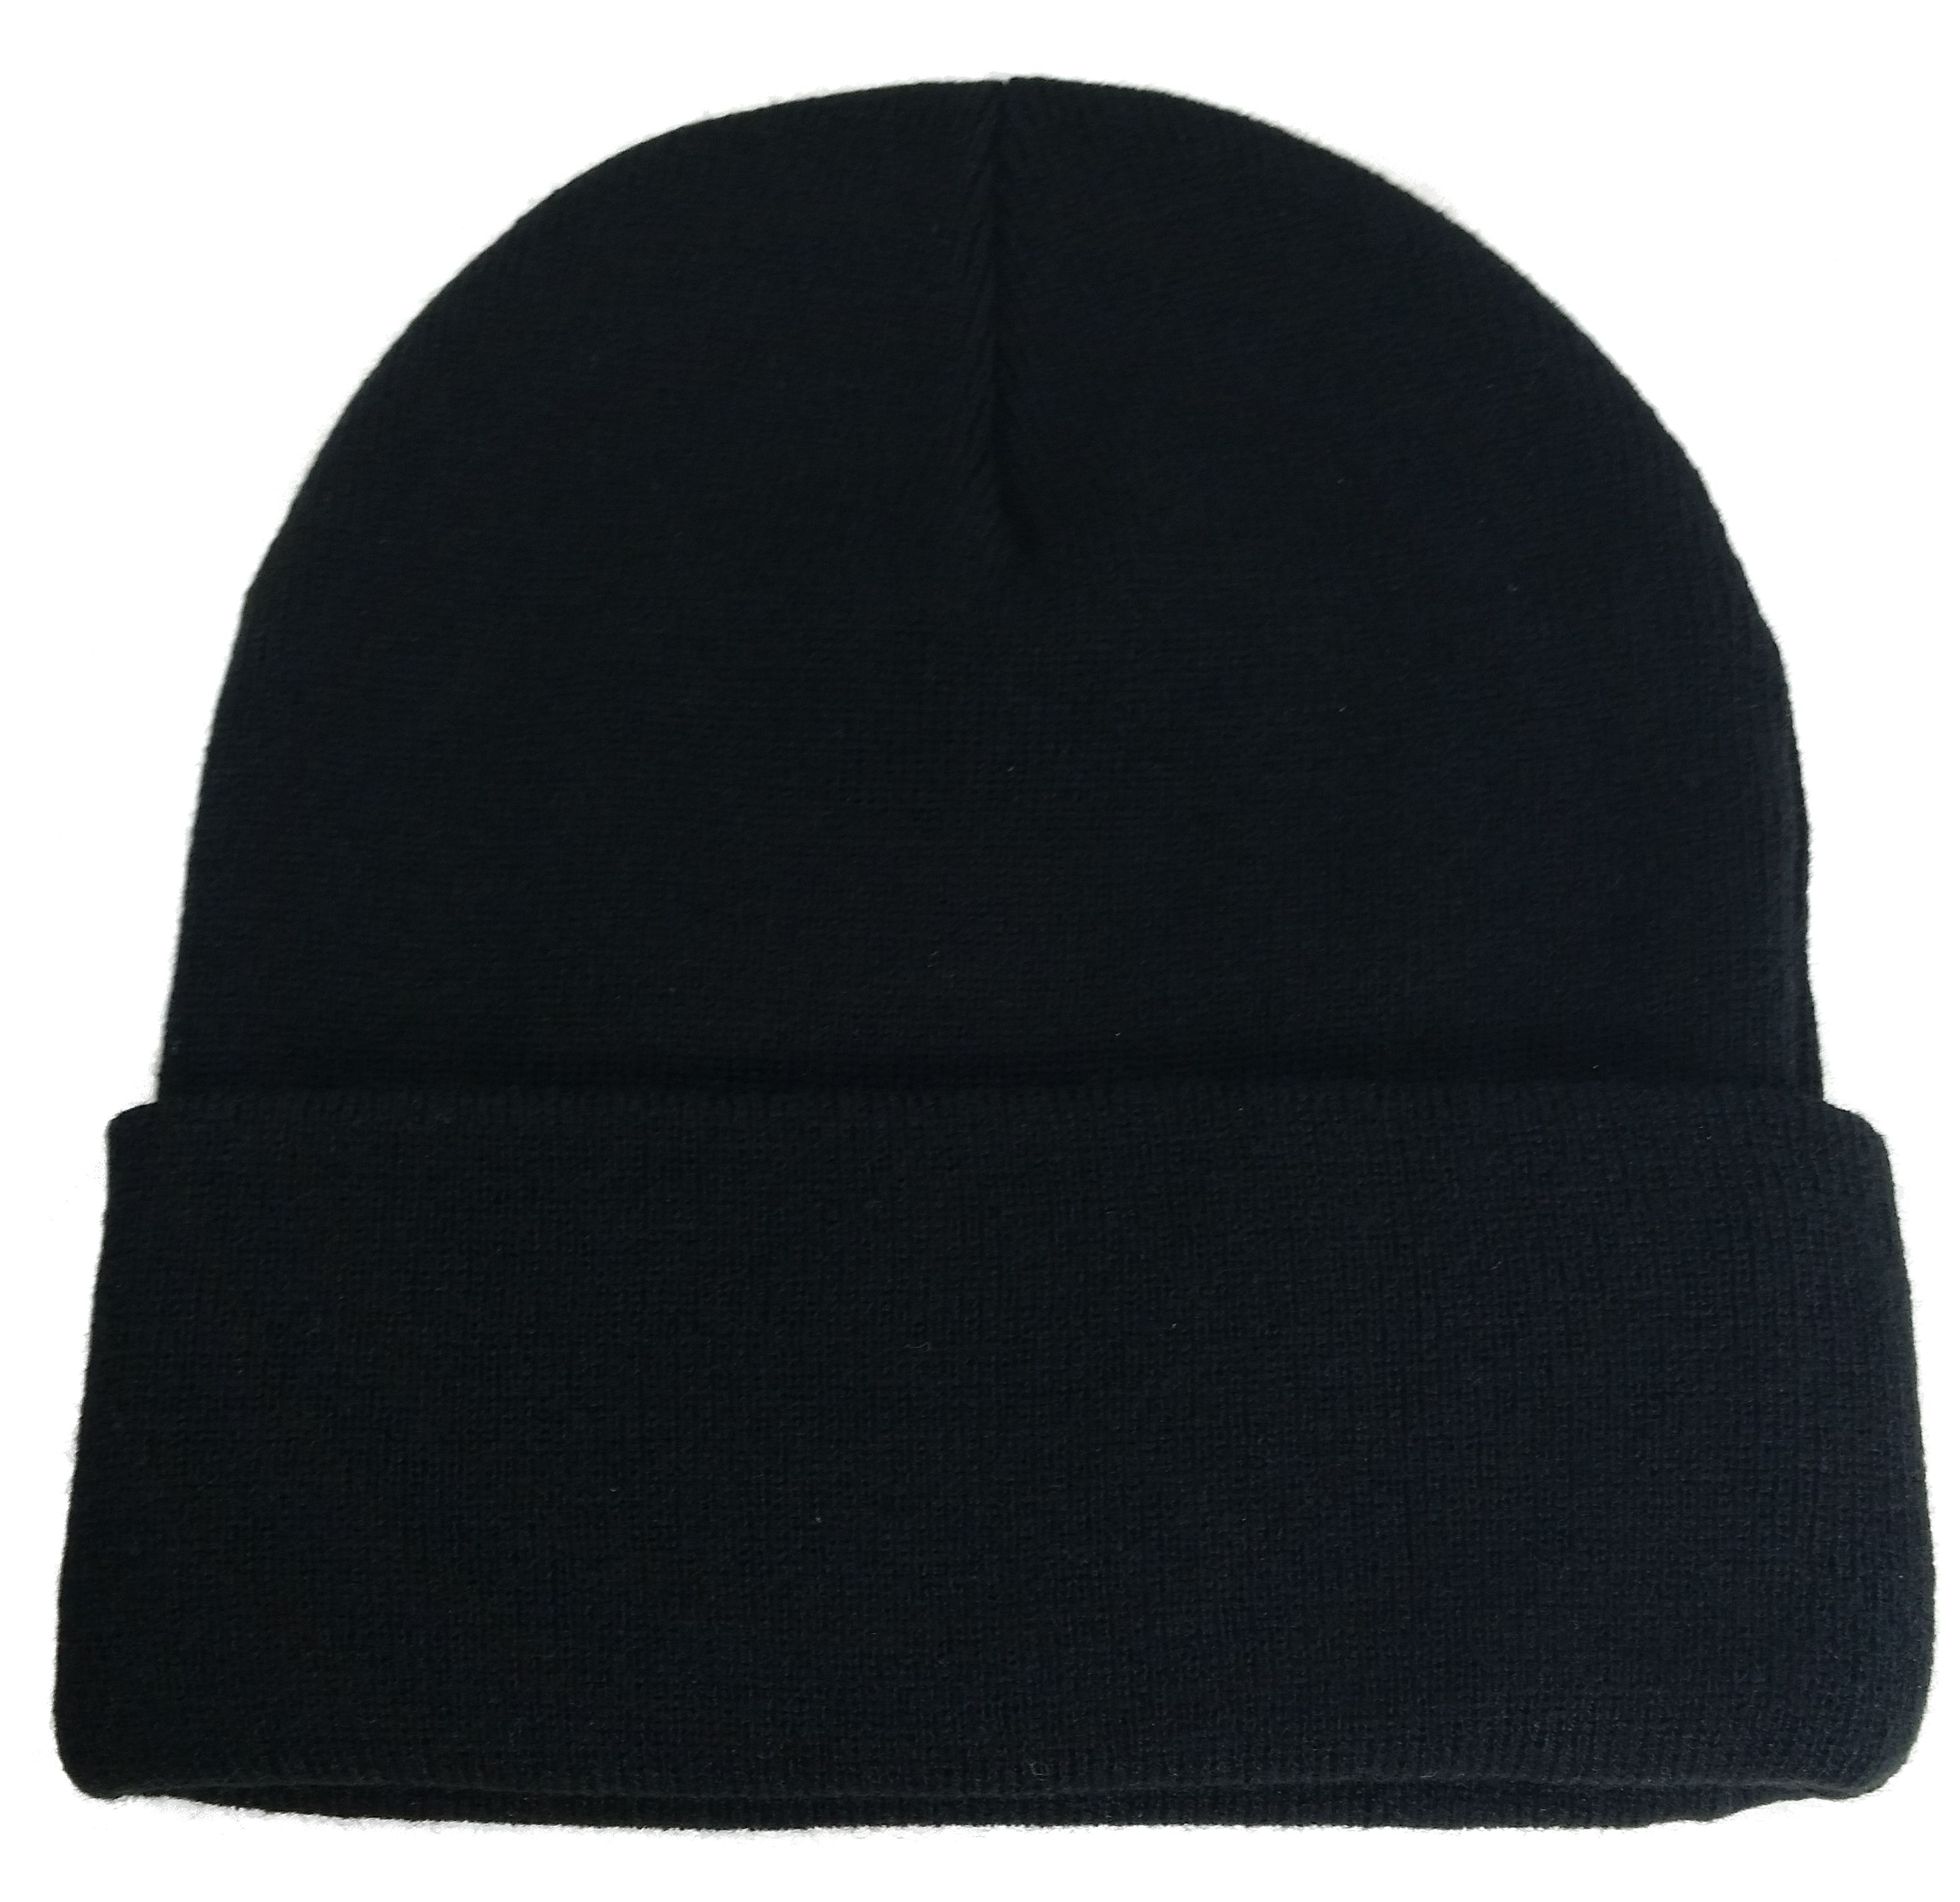 Free shipping BOTH ways on black knit hat, from our vast selection of styles. Fast delivery, and 24/7/ real-person service with a smile. Click or call